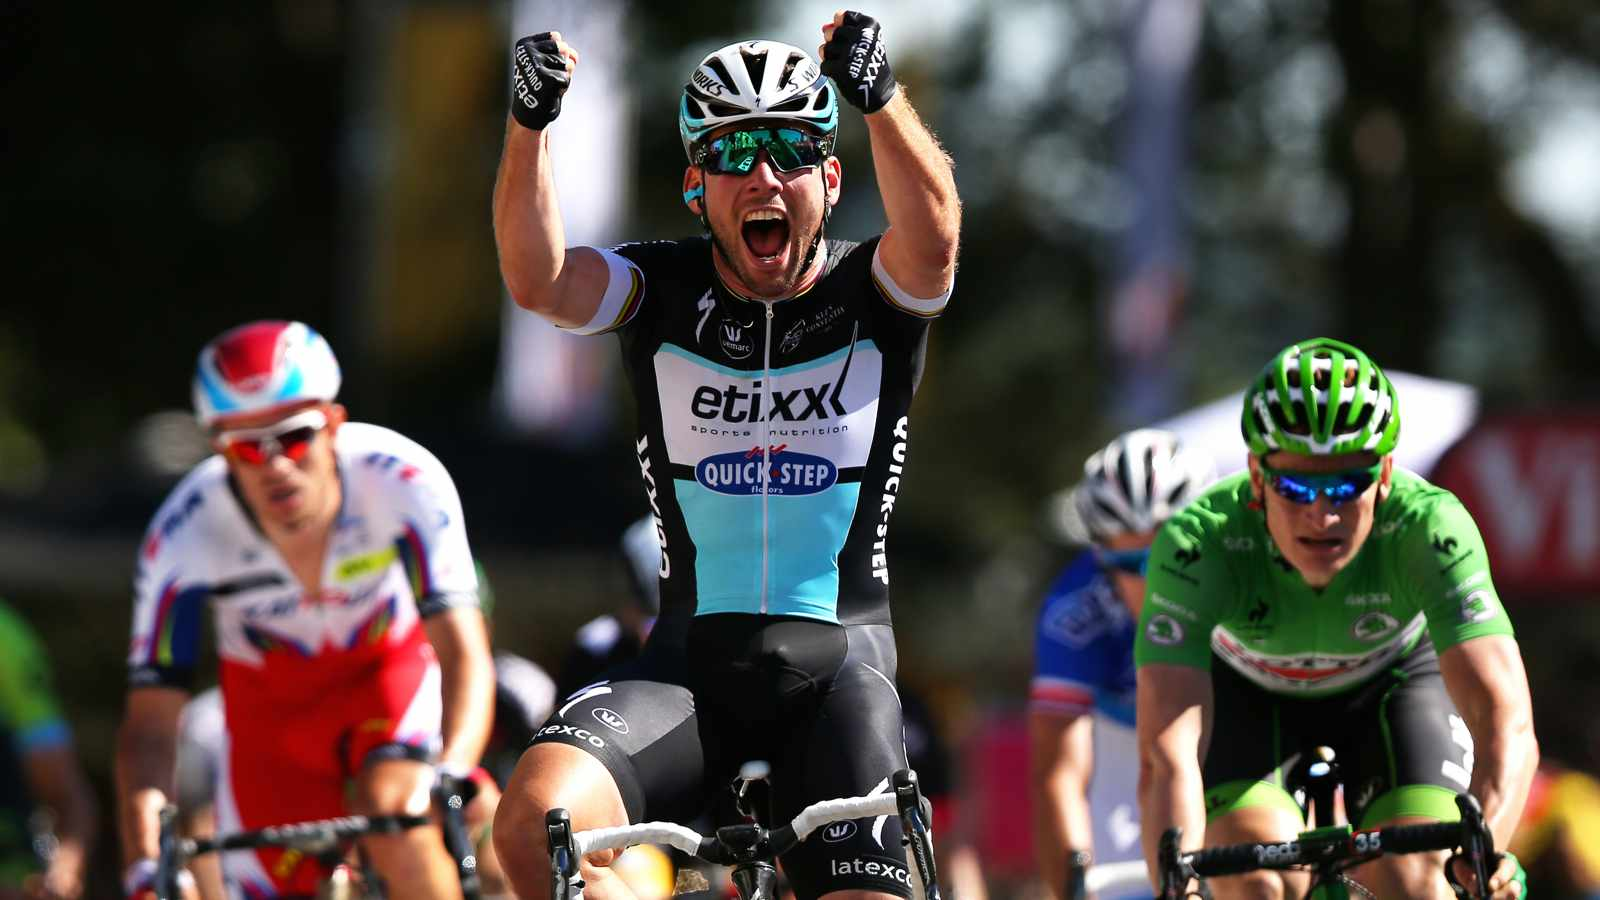 Mark Cavendish notches his first stage win of the 2015 Tour de France